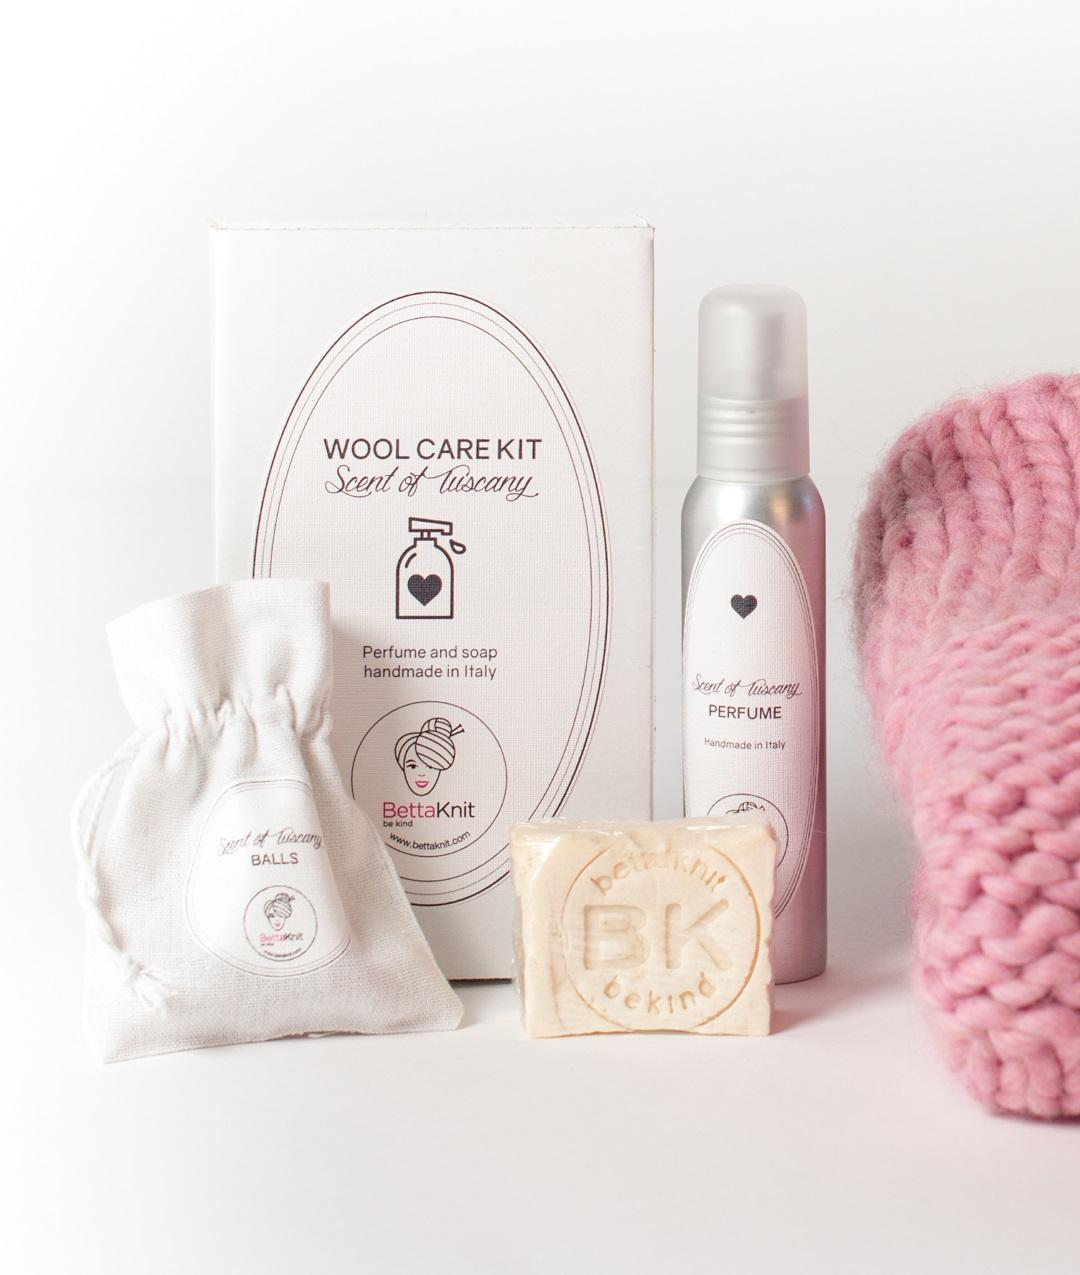 Wool Care  - Kit Wool Care  - Scent of Tuscany - Wool Care kit - 1